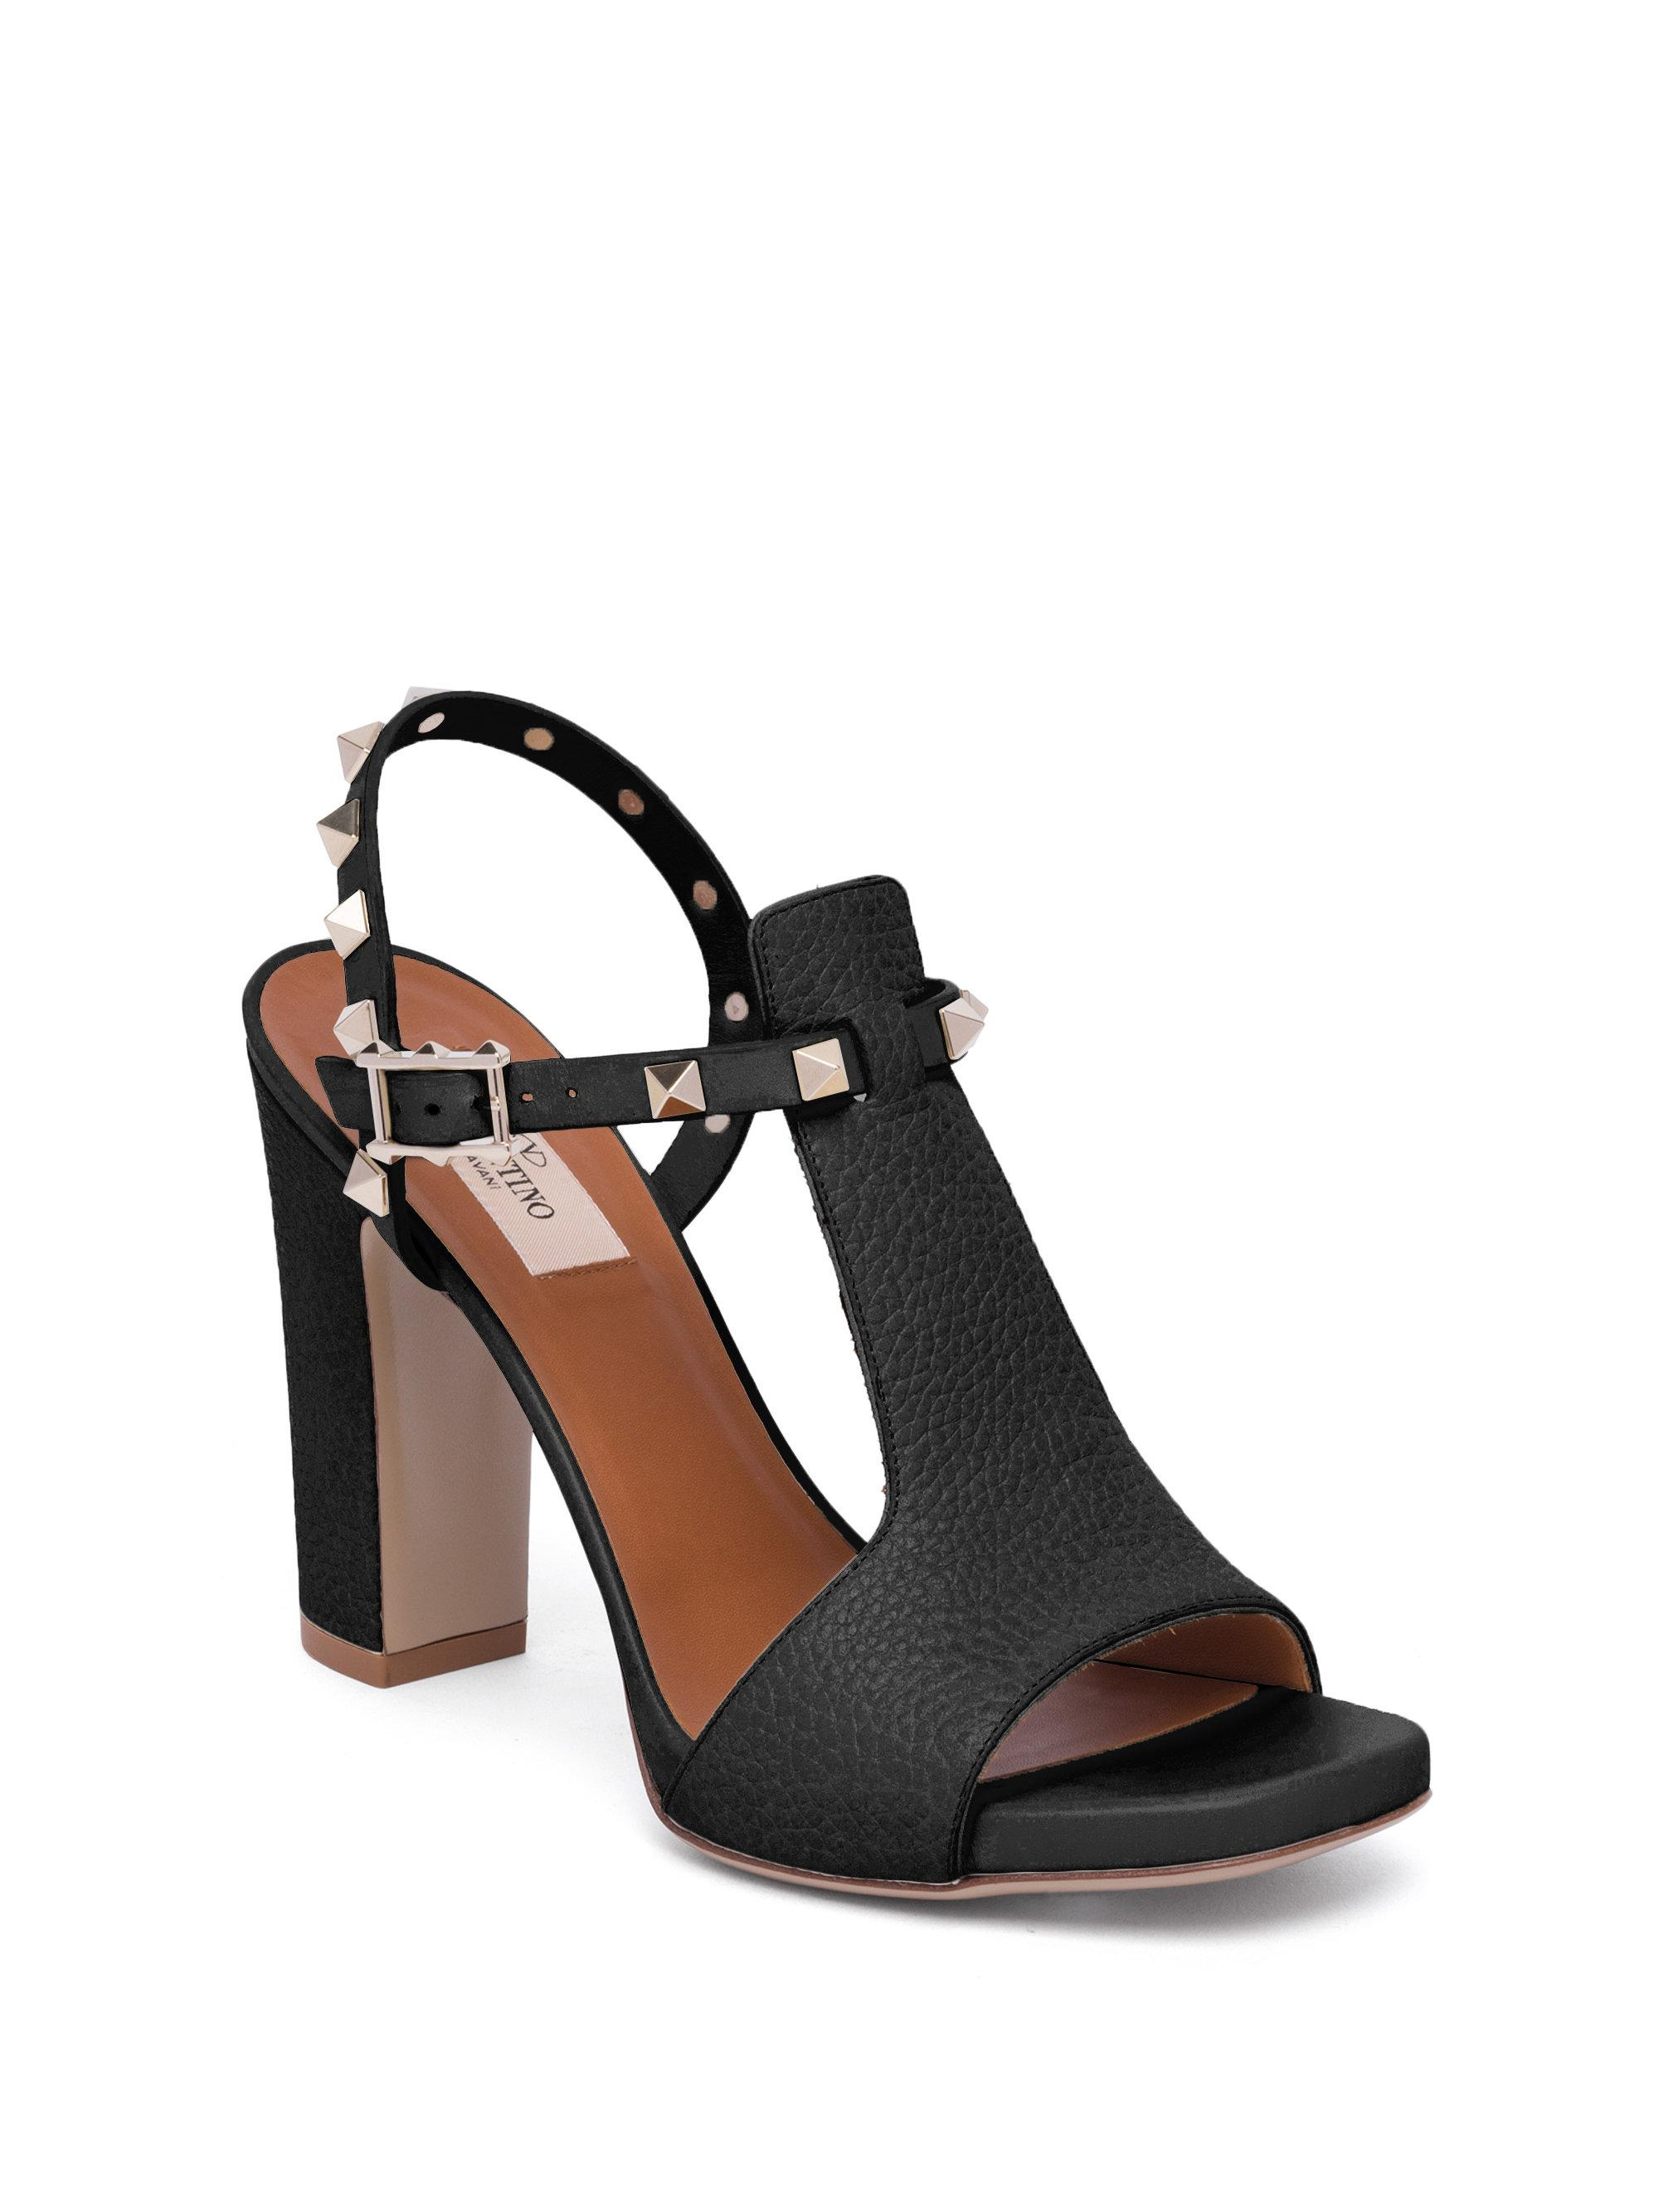 Valentino Leather Cutout Sandals buy cheap purchase DTz6Ty